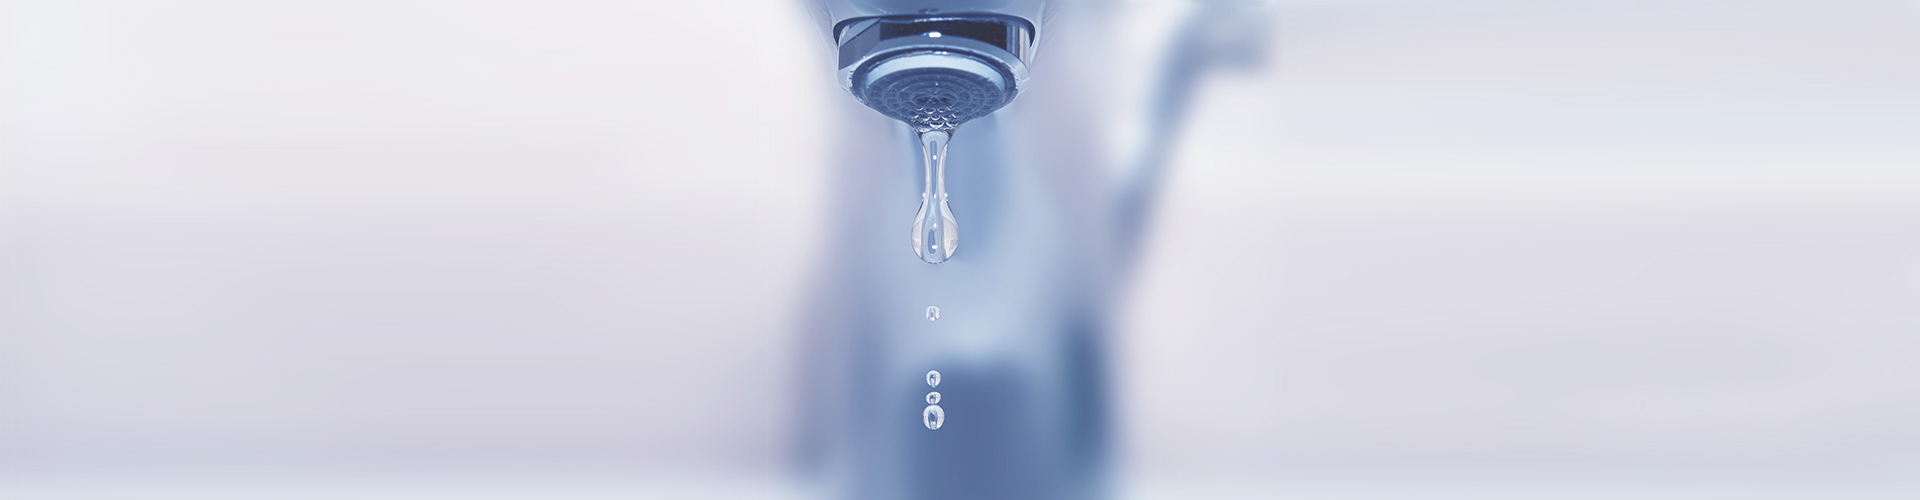 faucet dripping image